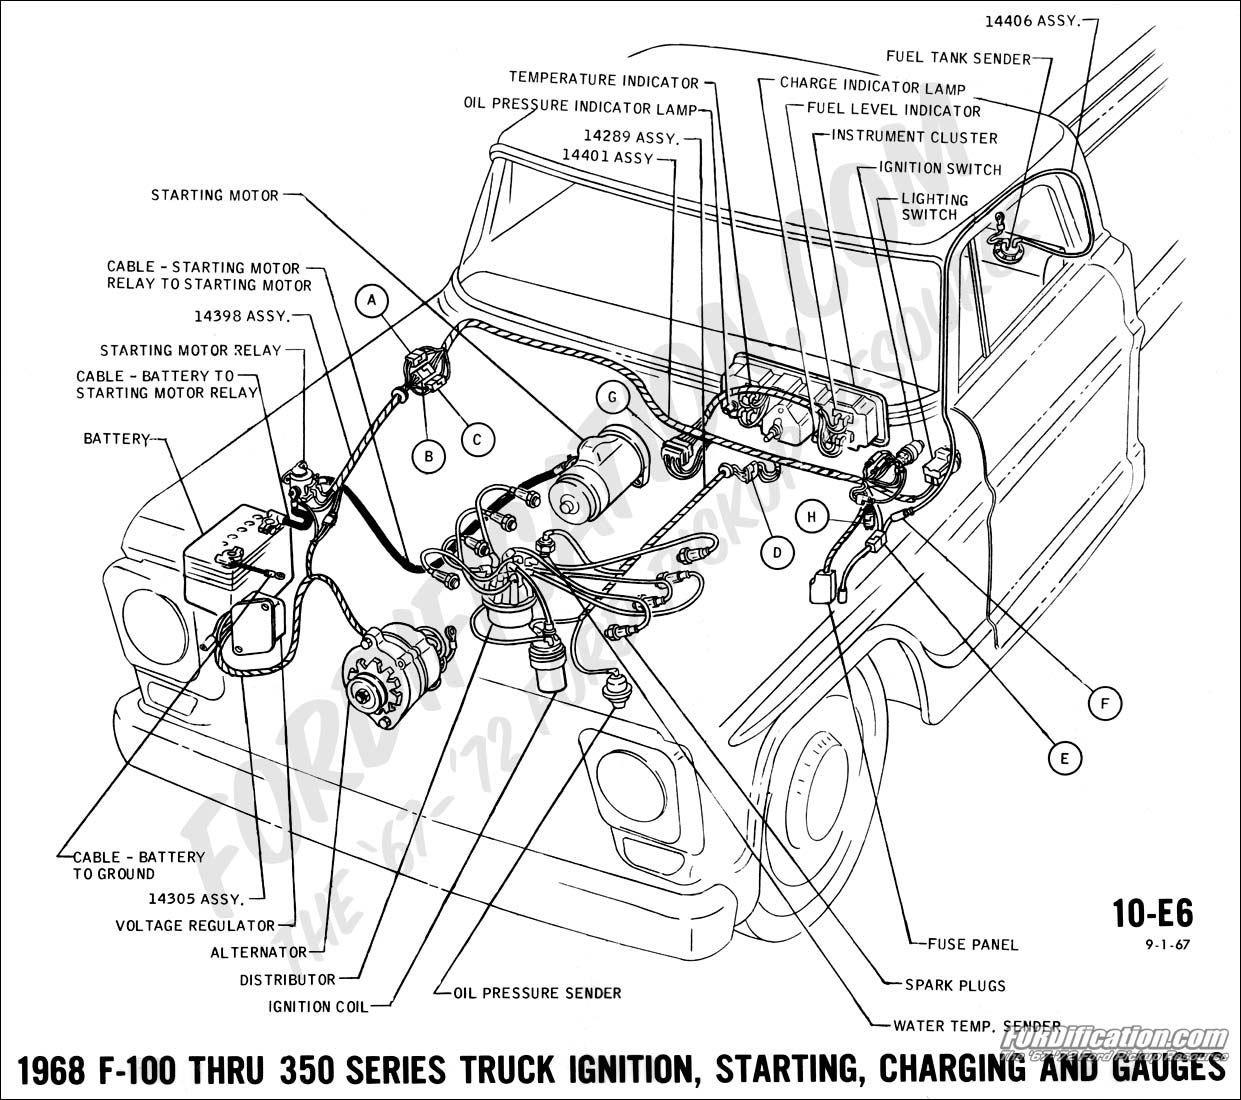 P 0900c15280062844 also Honda Trail 90 Carb Diagram furthermore Honda Cx500 Wiring Diagram also 358528820314528807 furthermore 1986 El Camino Wiring Diagram. on 1981 ford f 350 wiring diagram